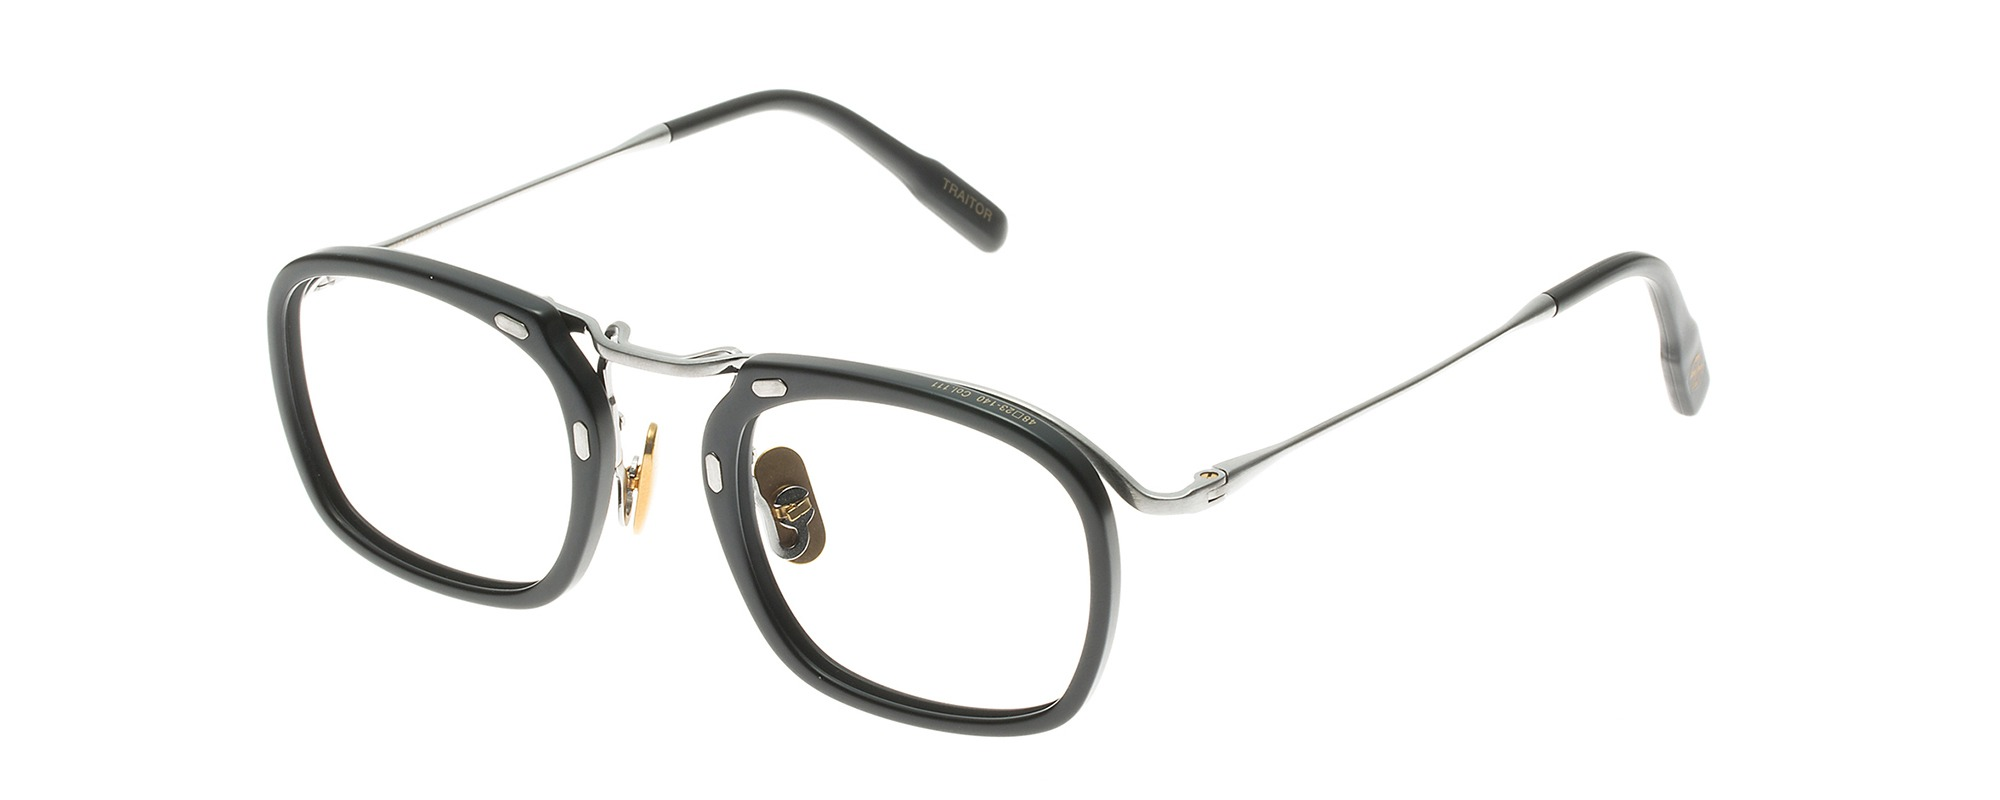 OG × OLIVER GOLDSMITH TRAITOR トレイター